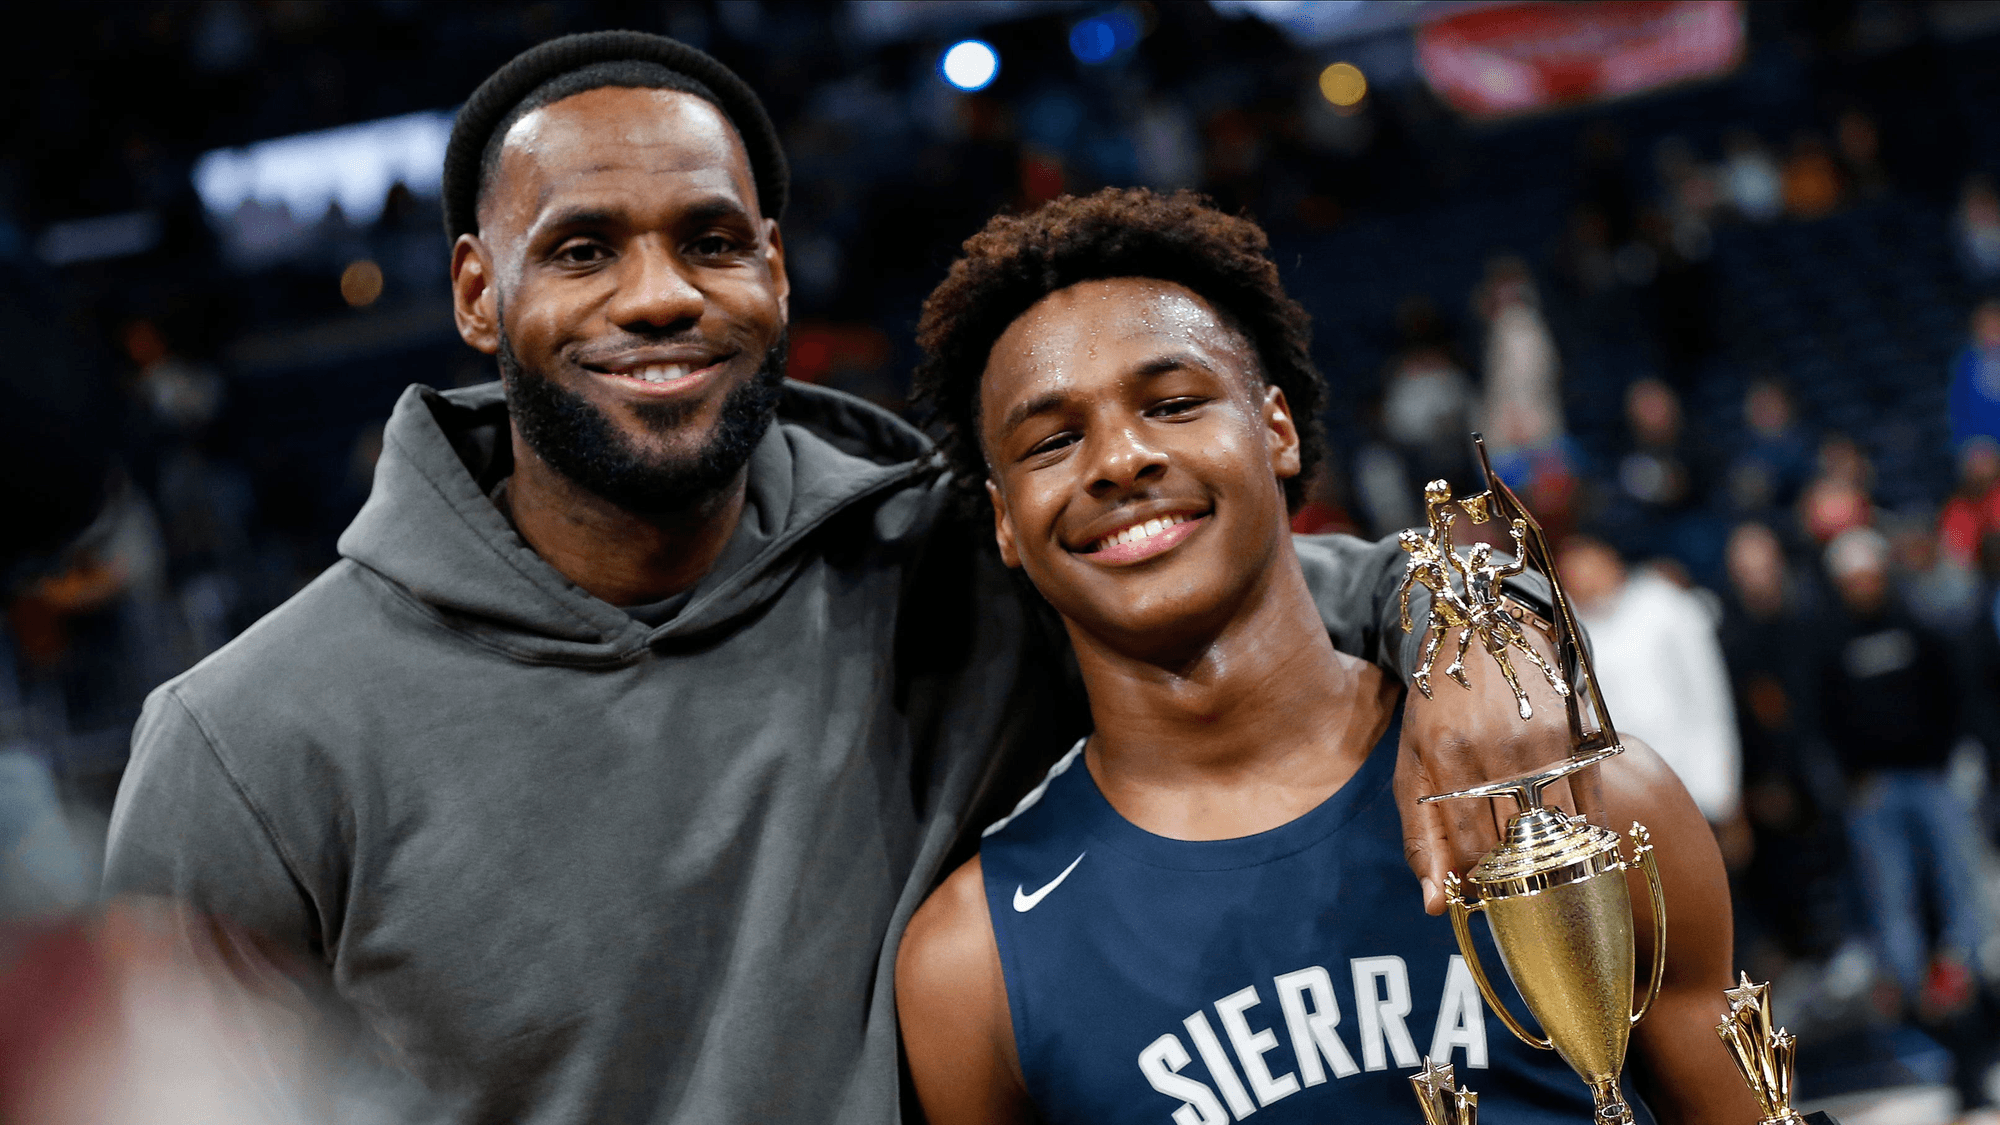 Bronny James Odds: Which NCAA Team Will He Play For?